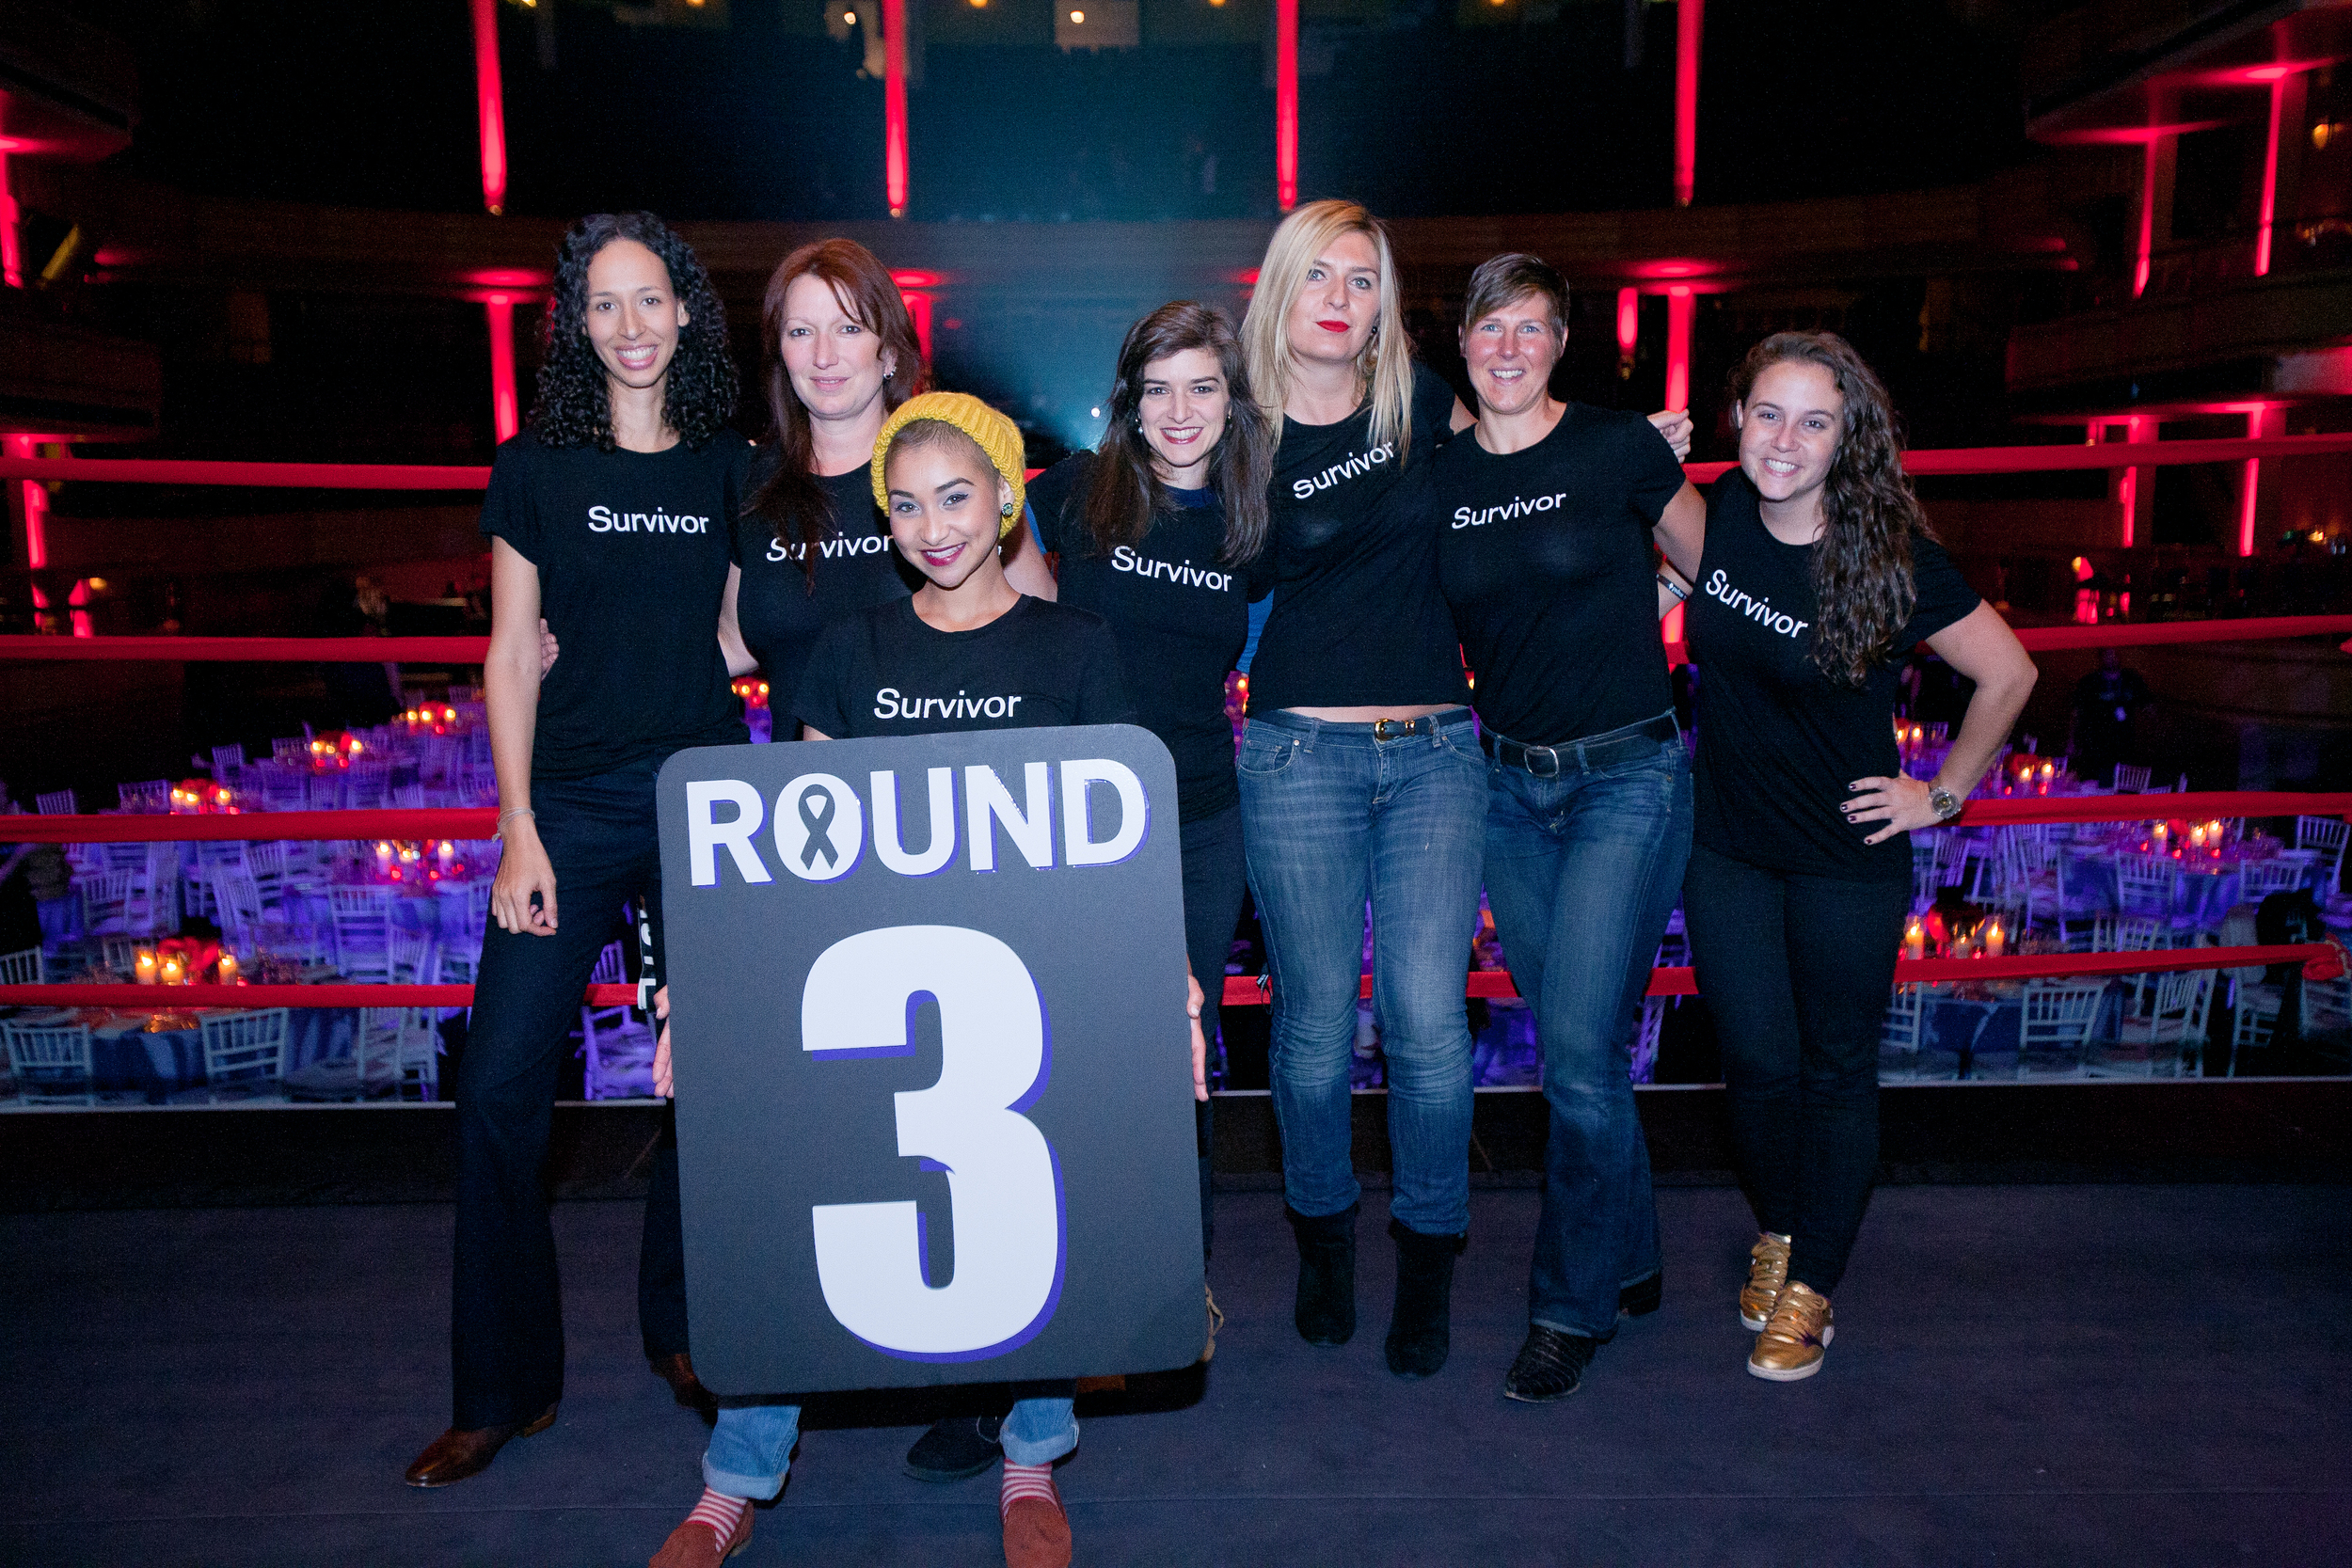 Cancer survivors acted as the night's ring girls, announcing each round. Haymakers for Hope at the Hammerstein Ballroom in New York City, Nov. 14, 2013.